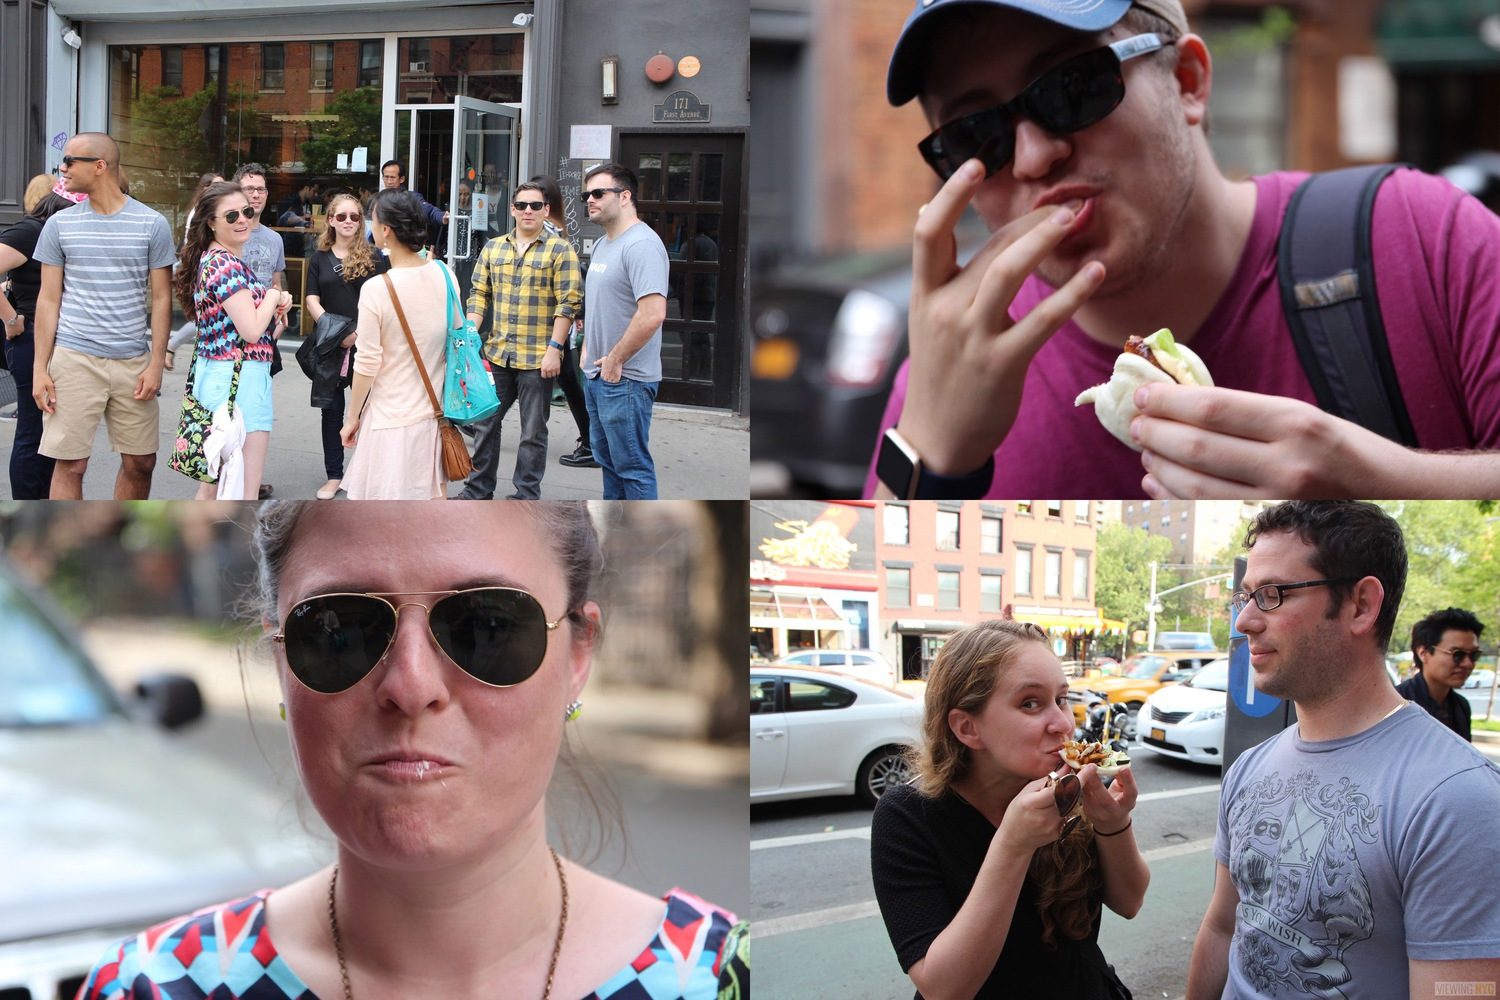 Crawlers | 2016 Viewing NYC East Village Pork Bun Crawl